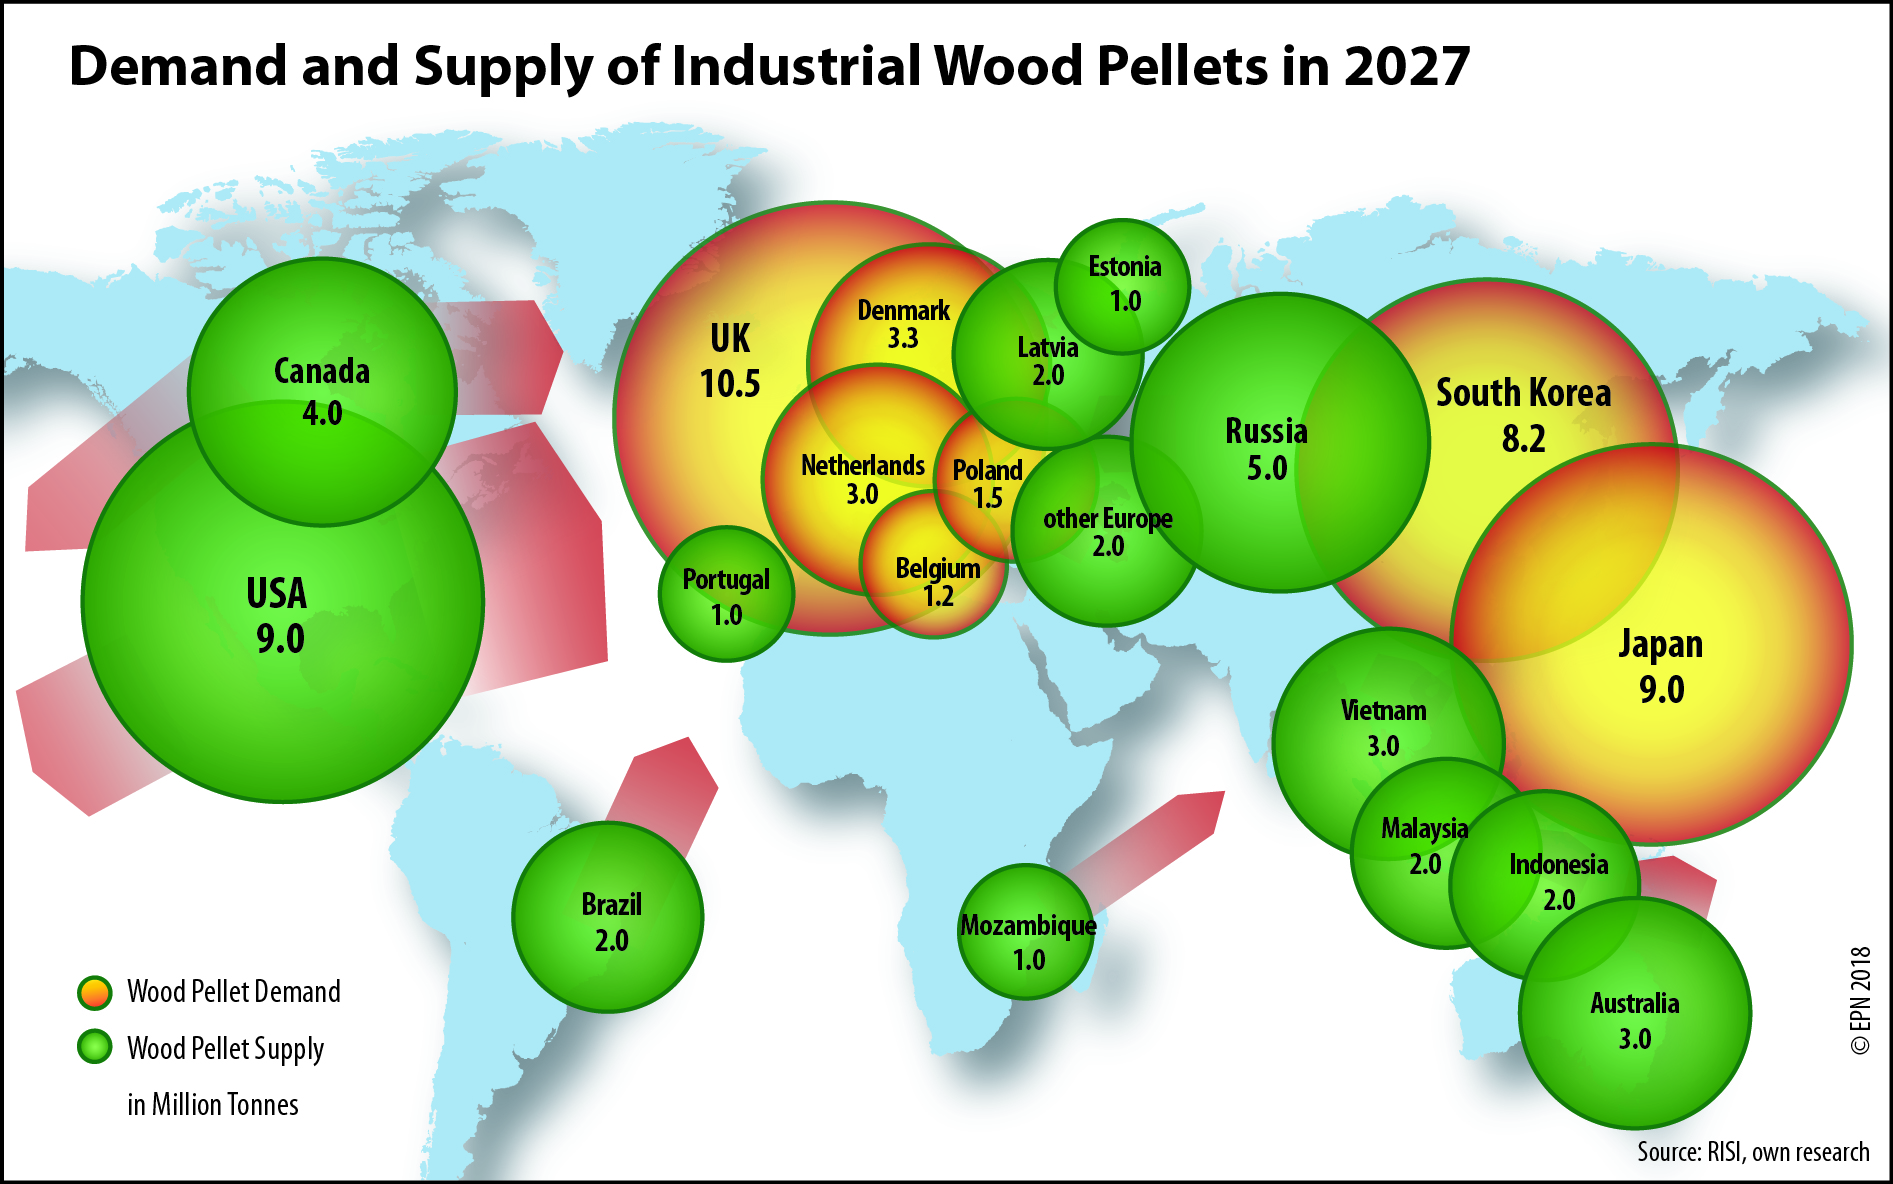 Demand and supply of industrial wood pellets 2027